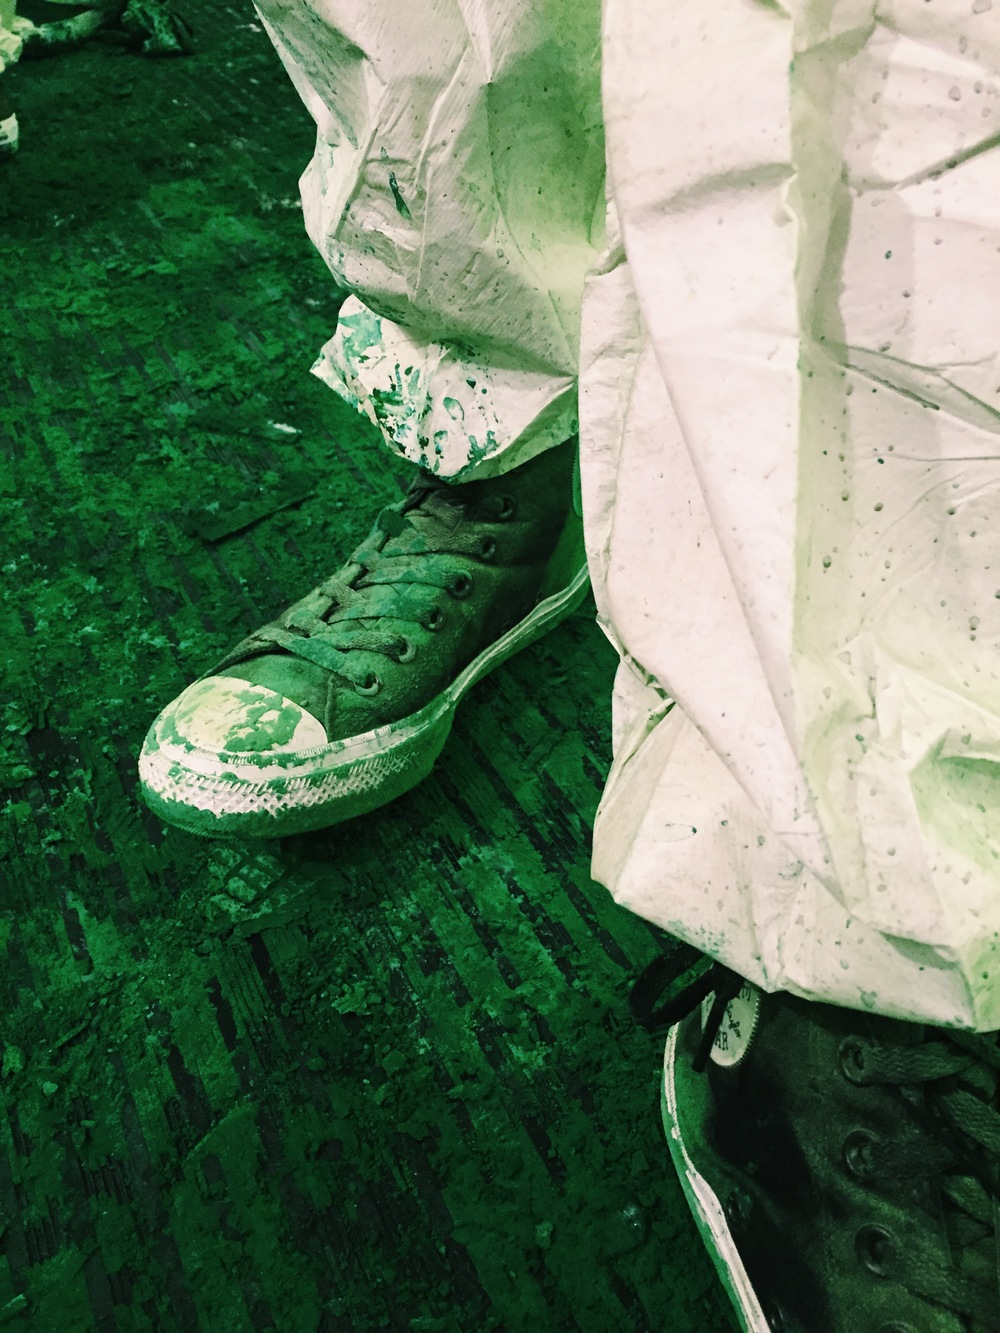 The New ChuckII Covered in pigment paint at the release of the shoe in nyc